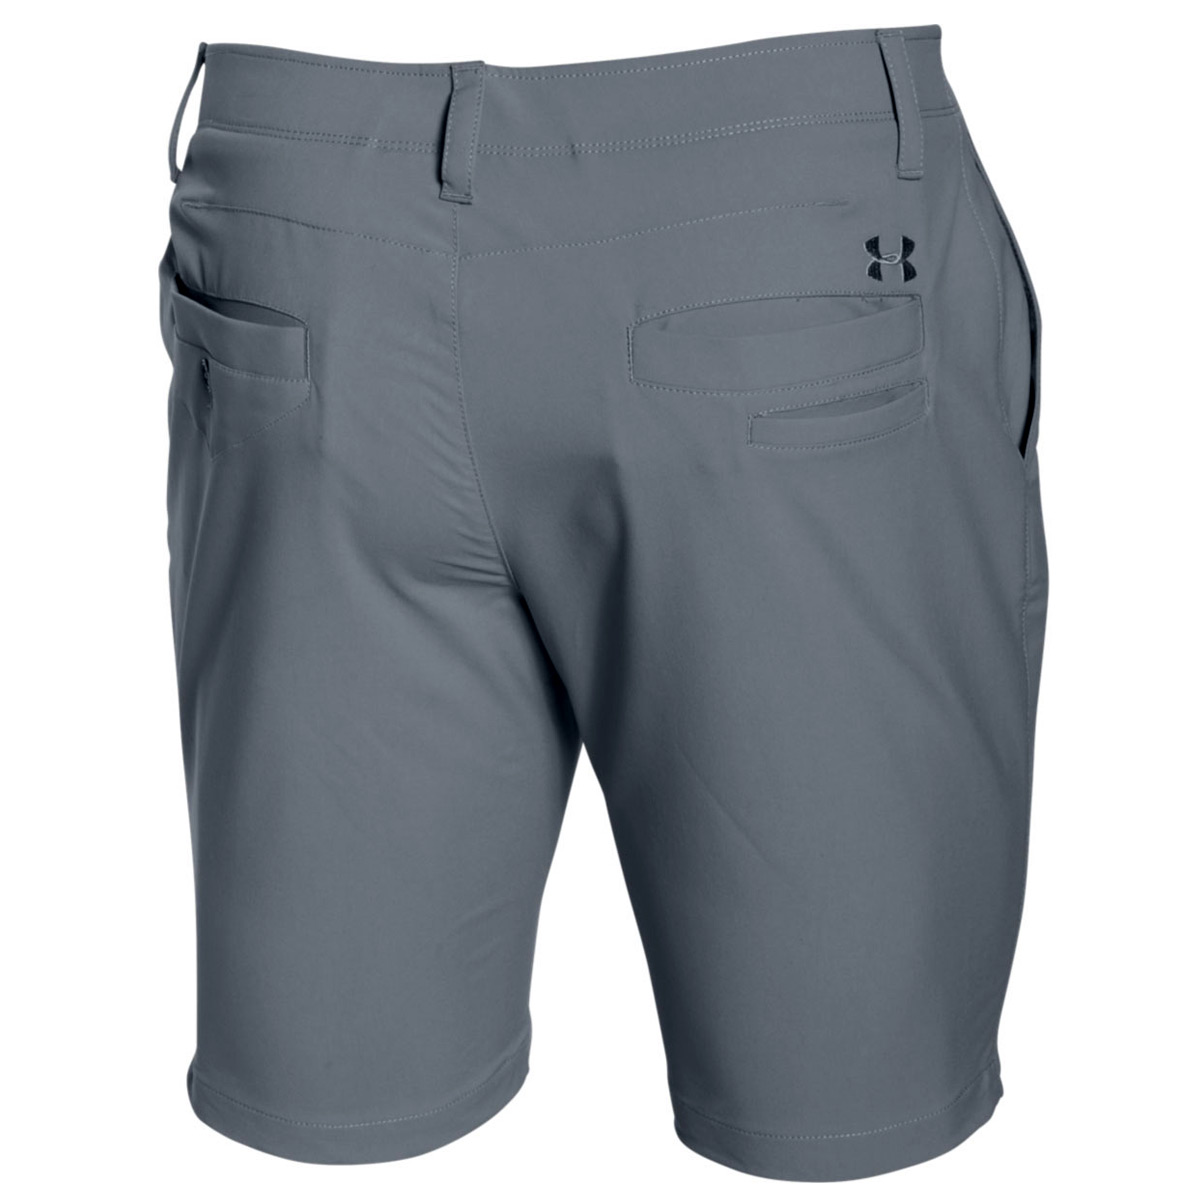 Under-Armour-Mens-UA-Match-Play-Taper-Tech-Performance-Golf-Shorts-29-OFF-RRP Indexbild 27